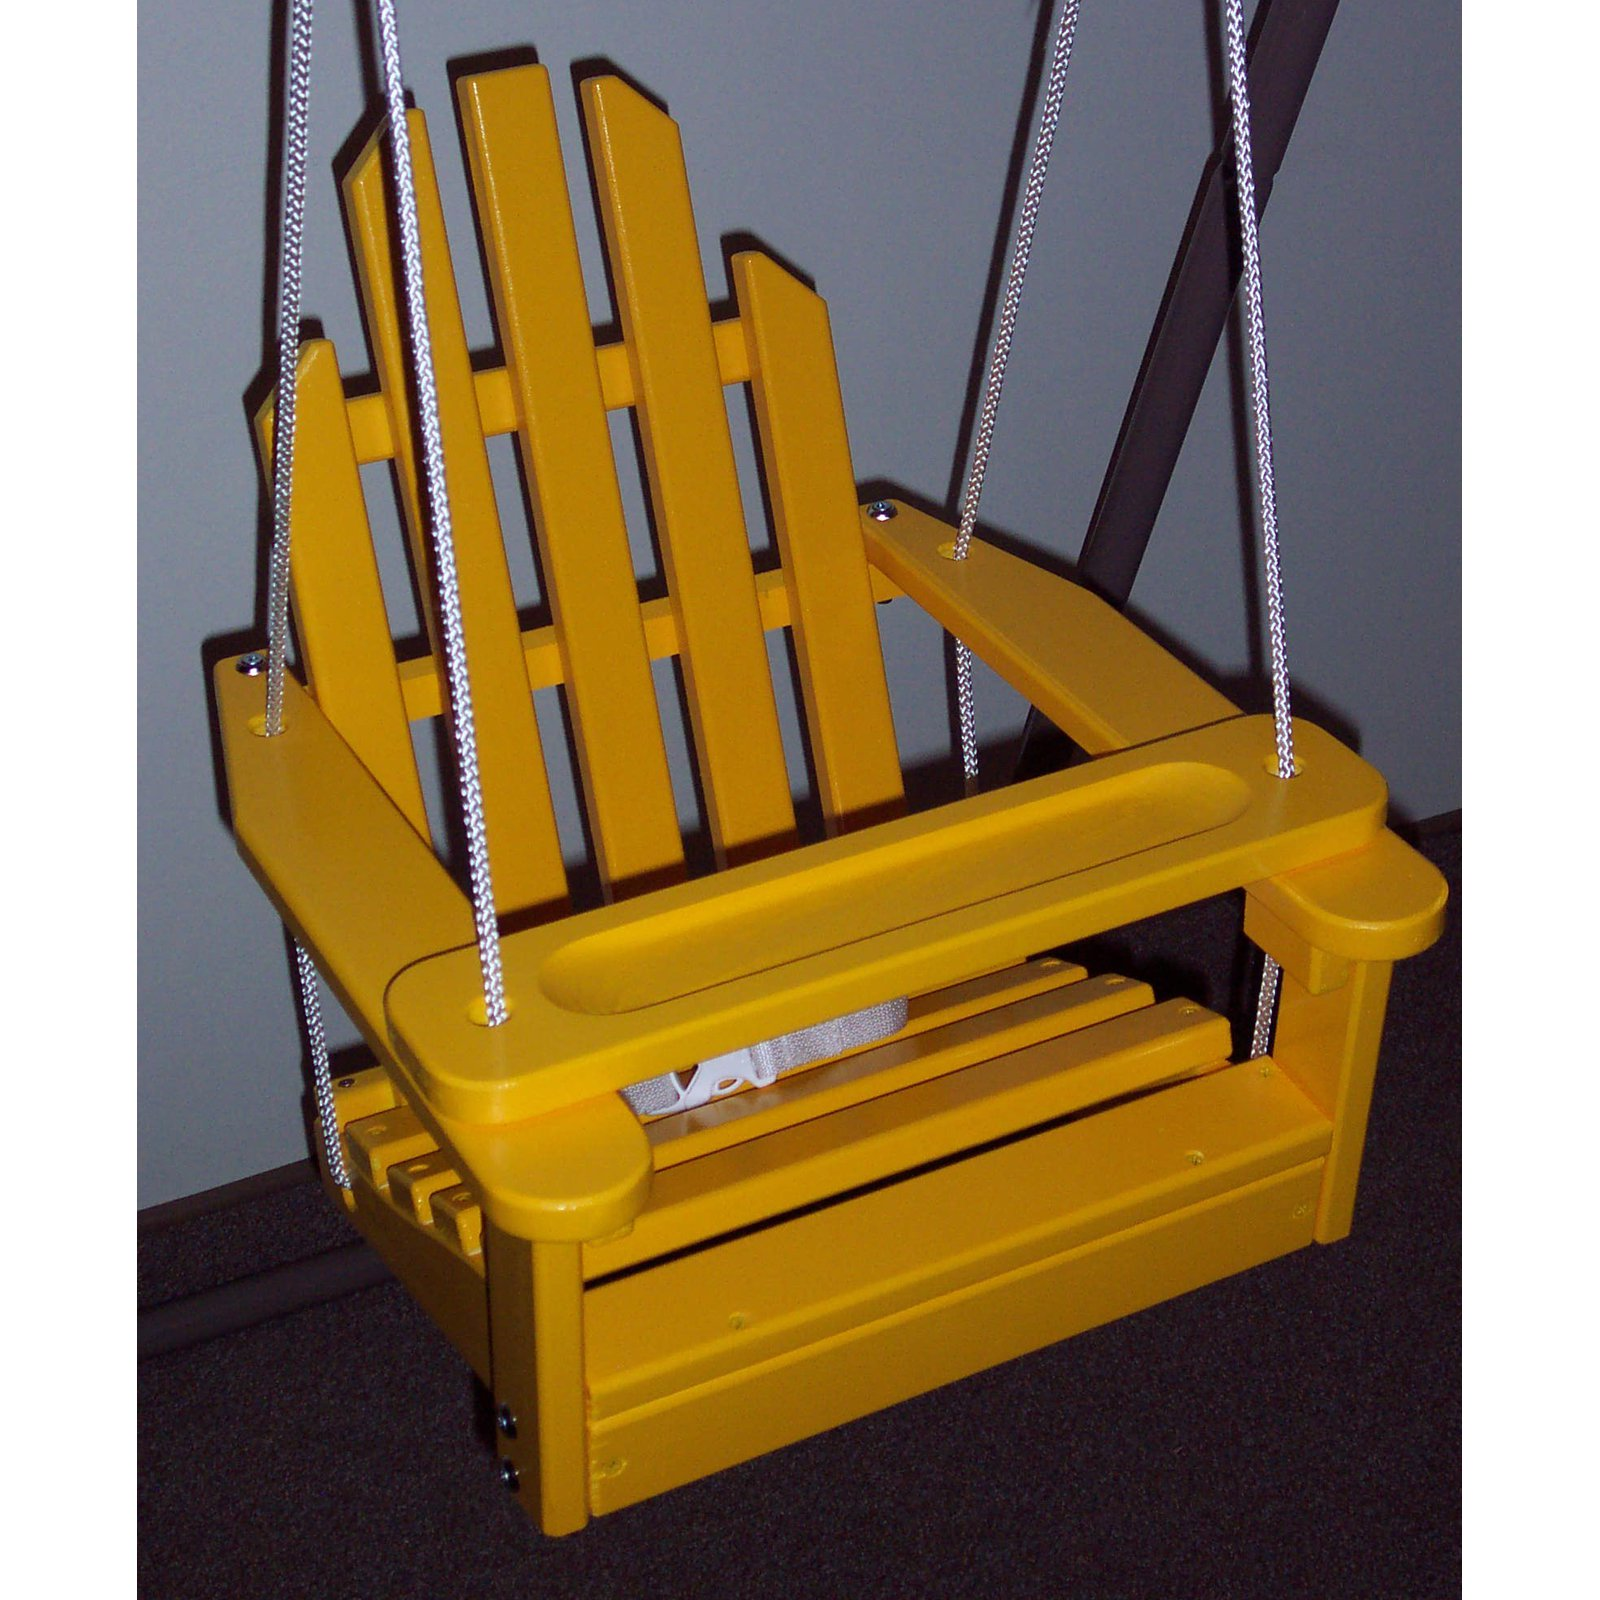 Prairie Leisure Kiddie Adirondack Chair Swing Walmart Com